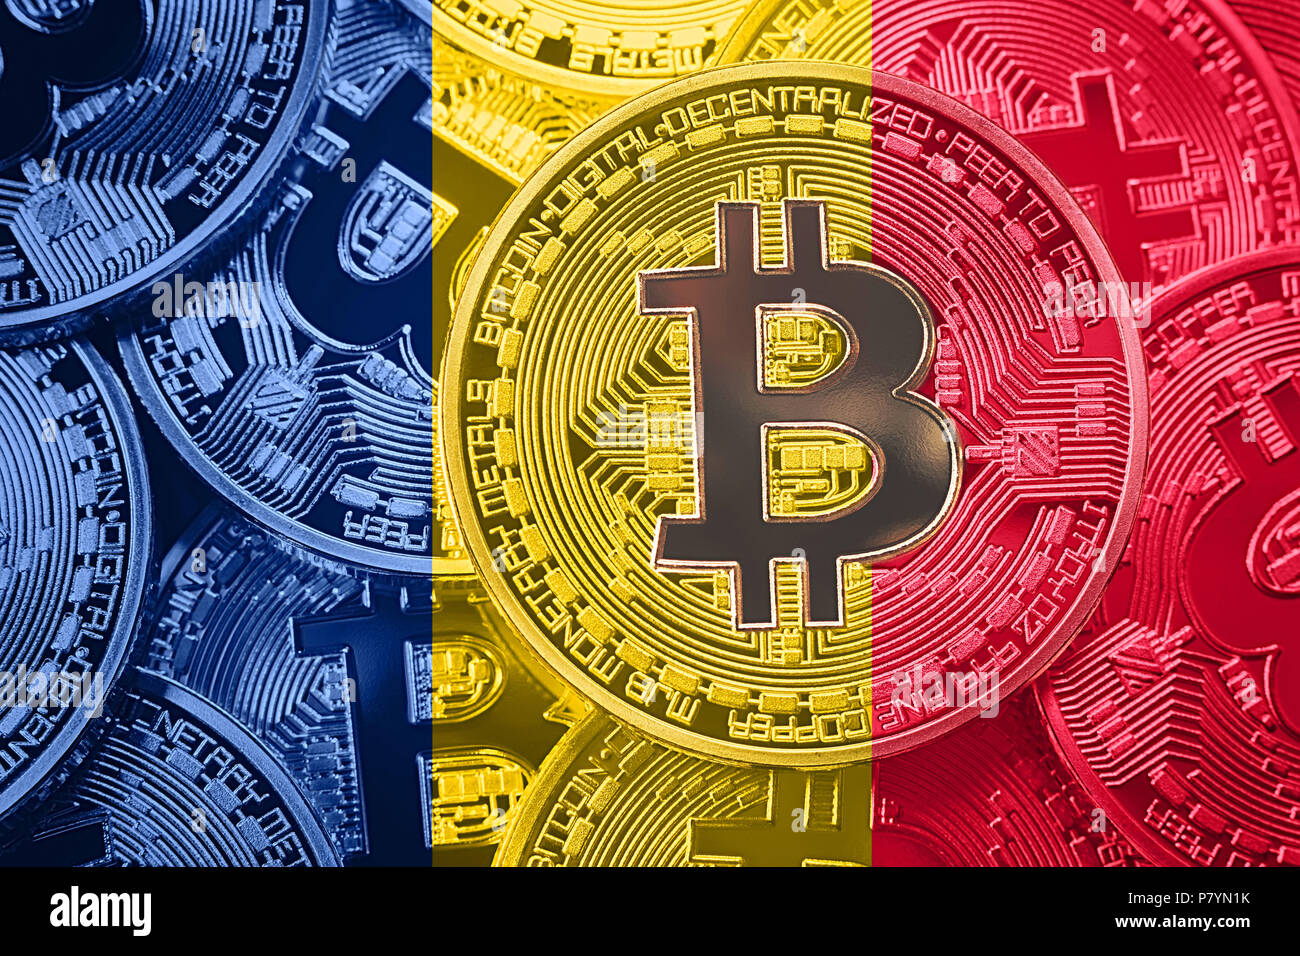 Stack of Bitcoin Chad flag. Bitcoin cryptocurrencies concept. BTC background. - Stock Image